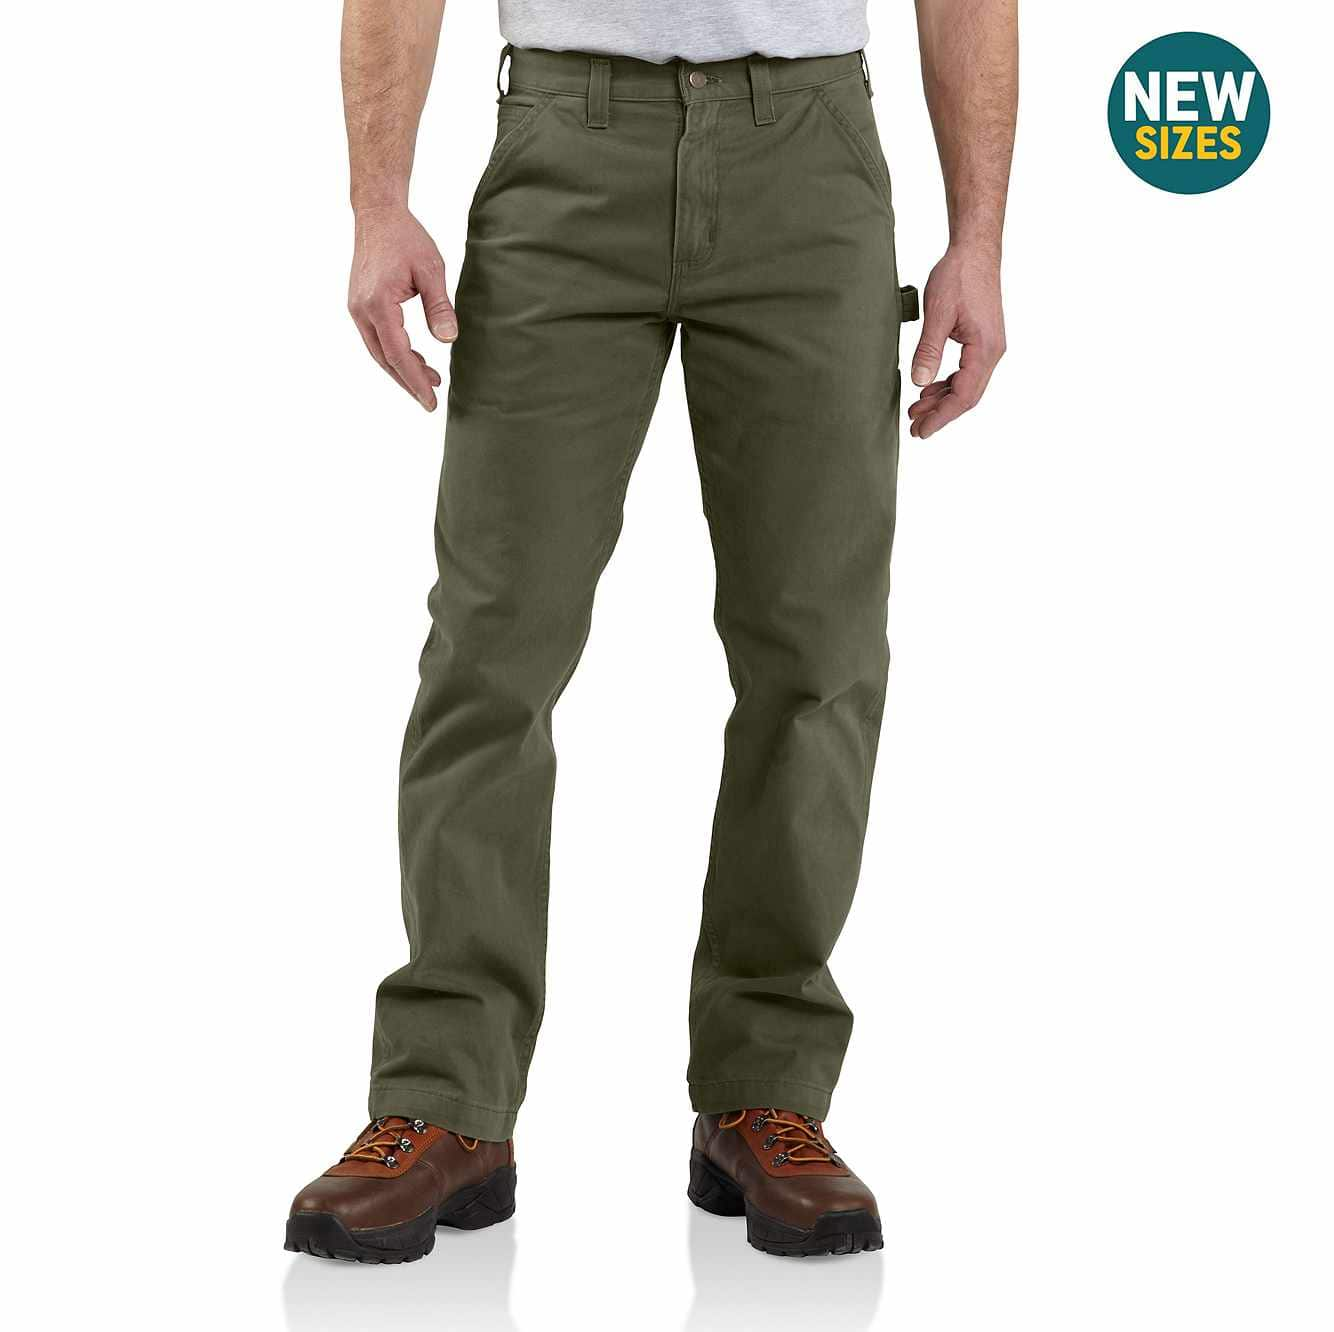 Picture of Washed Twill Relaxed Fit Work Pant in Army Green